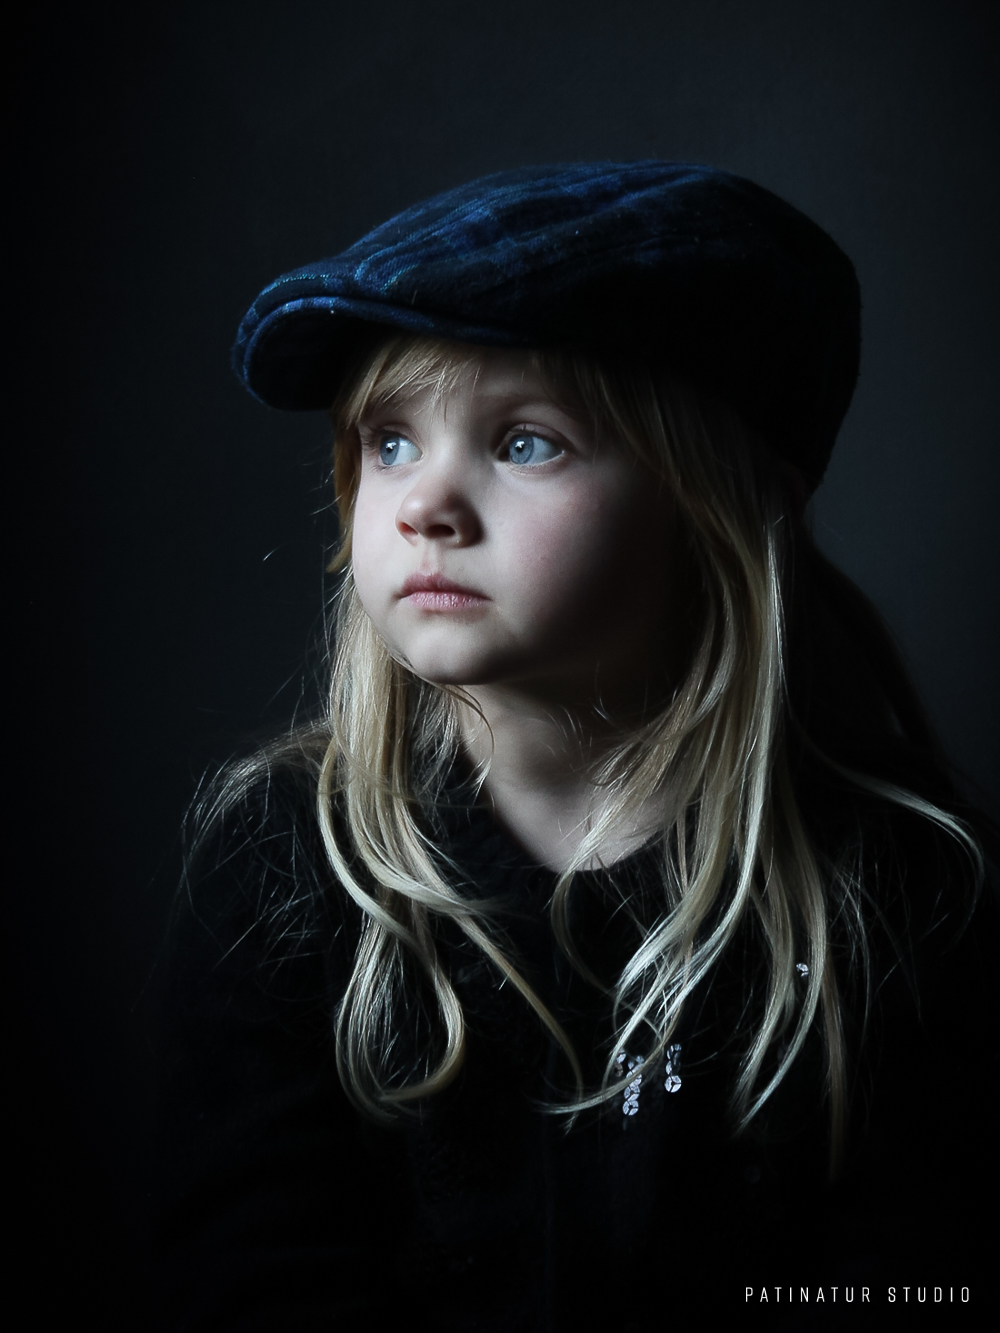 Chiaroscuro portrait of a little girl with a blue flat cap